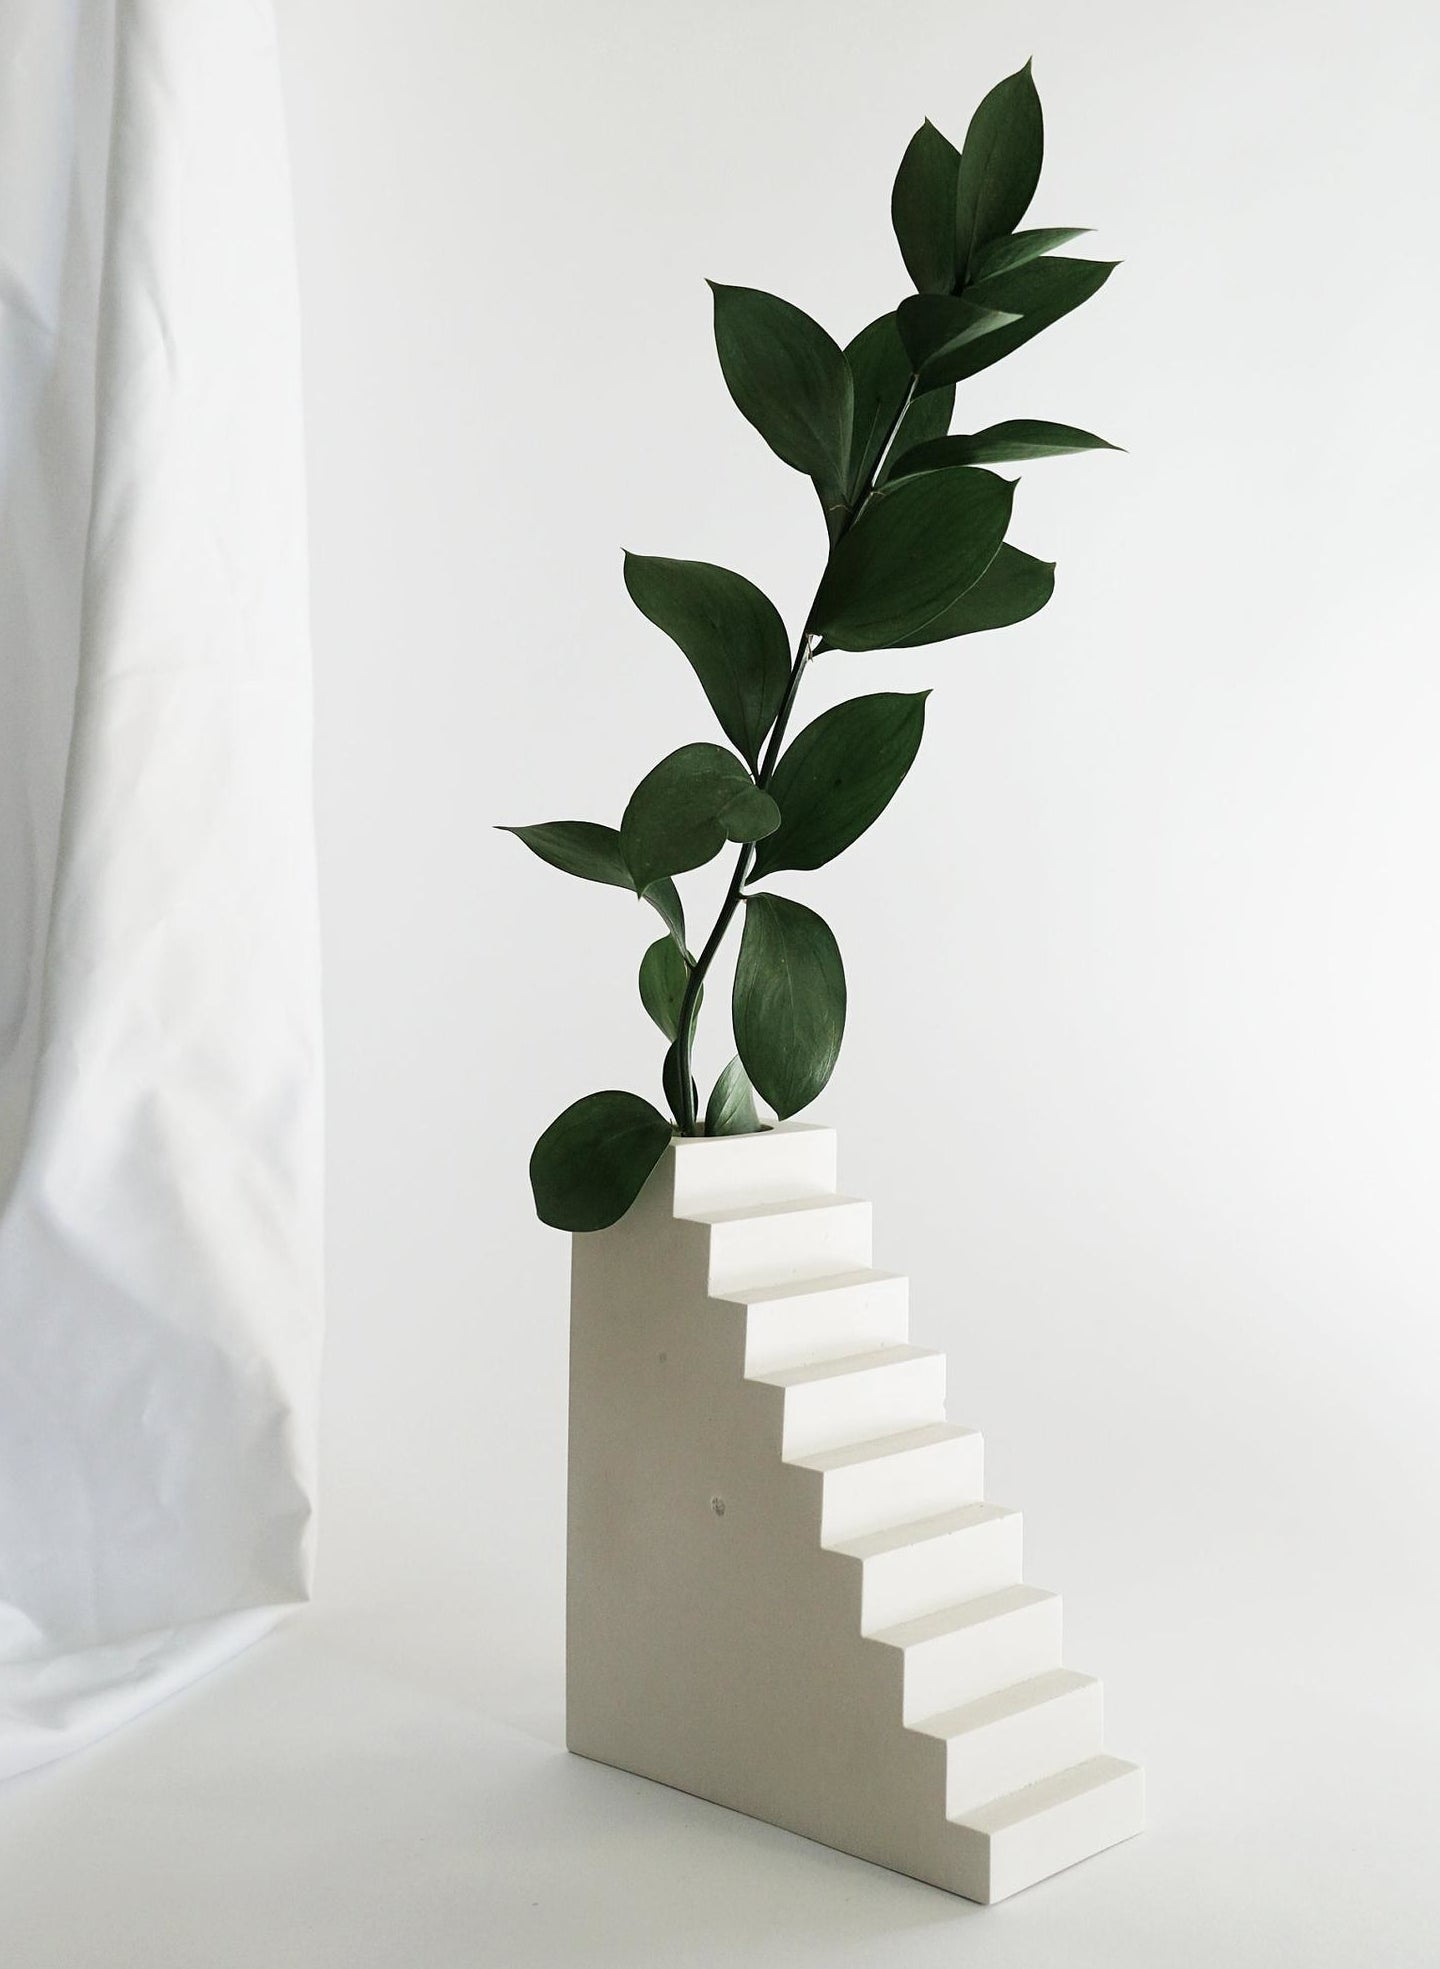 white concrete vase shaped like a flight of stairs with a small rectangular opening on top holding a leafy branch